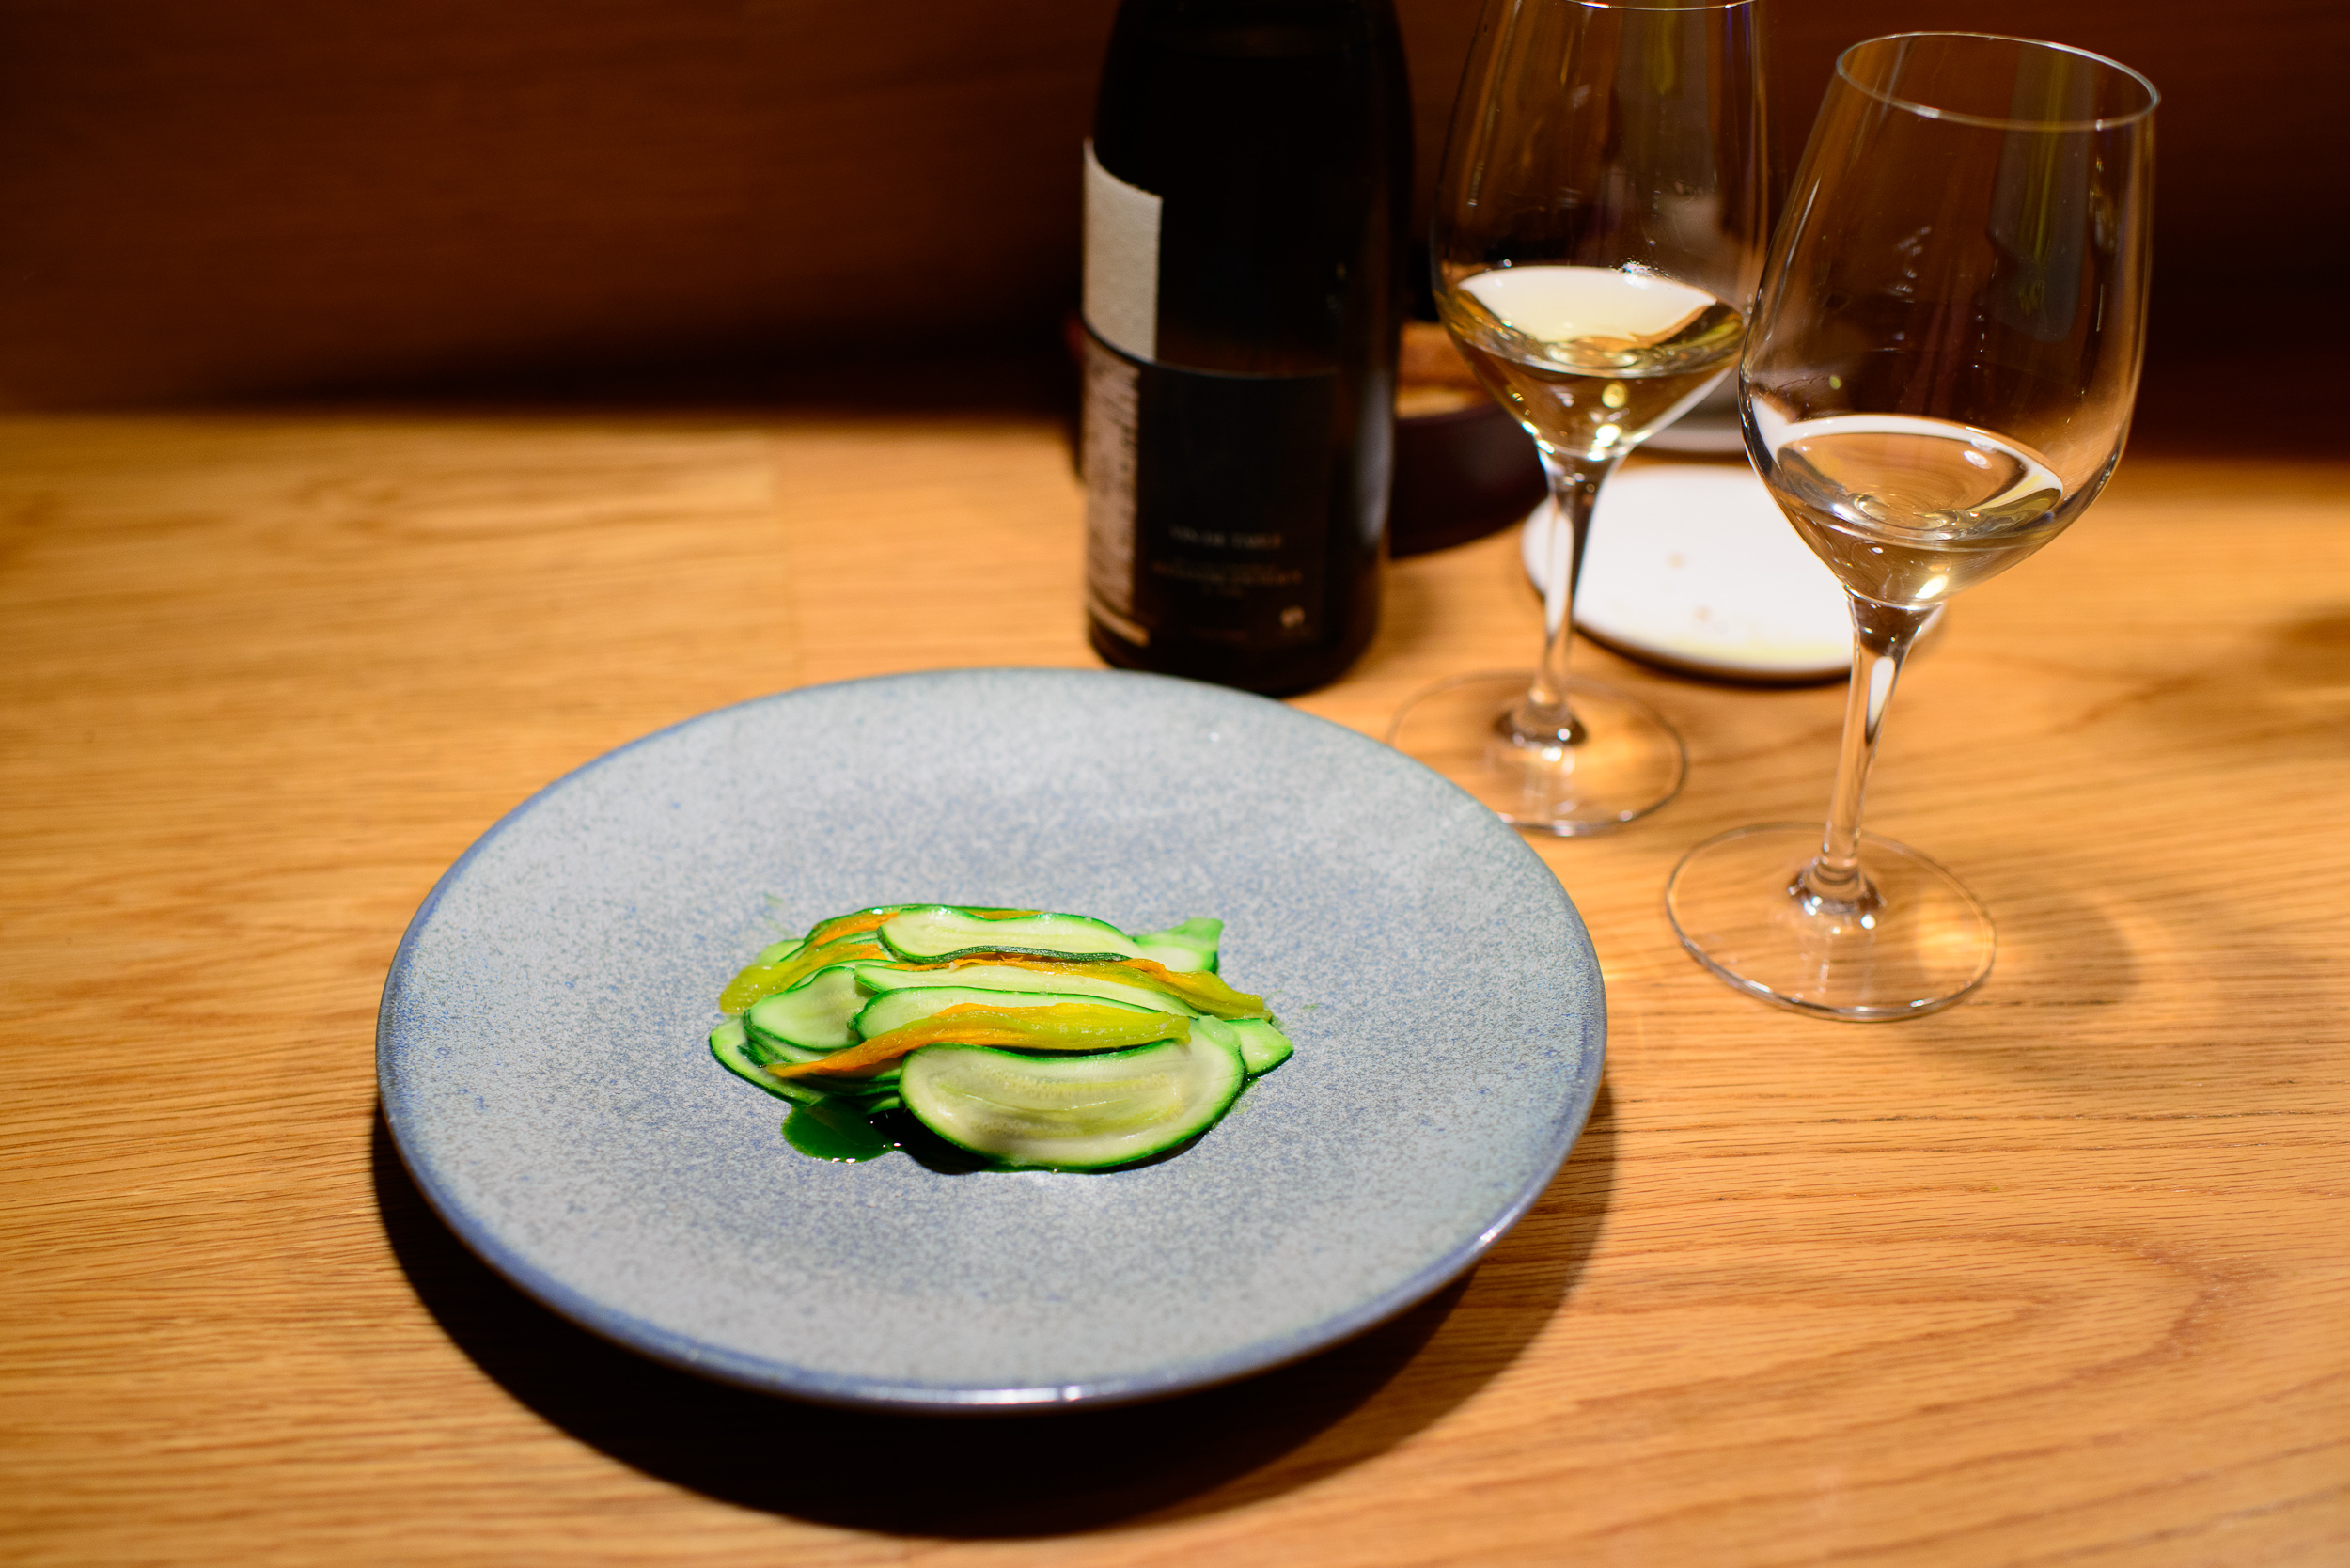 6th Course: Lamb Sweetbreads, Lovage Sauce, Courgettes